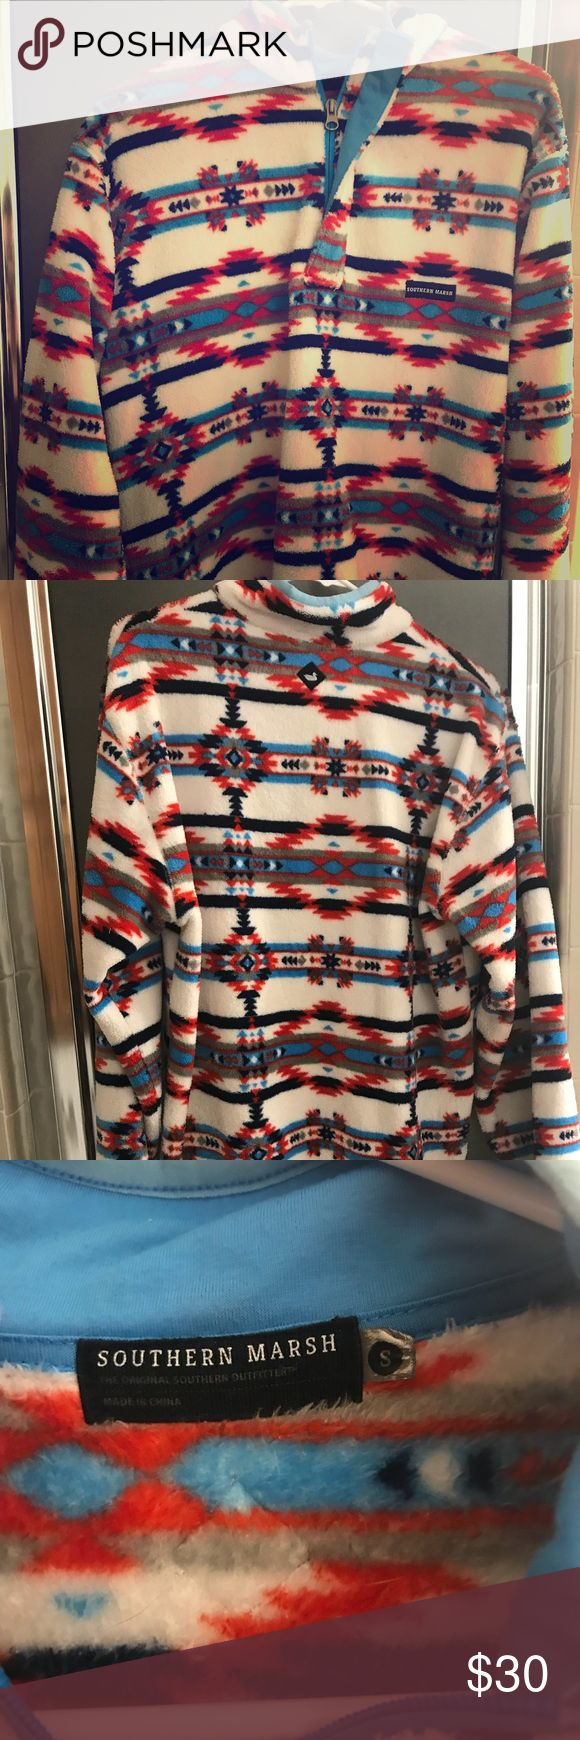 Southern Marsh: Red, Blue, and White Pullover Southern marsh pullover. Men's small (fits big on women). No major damage. southern marsh Tops Sweatshirts & Hoodies